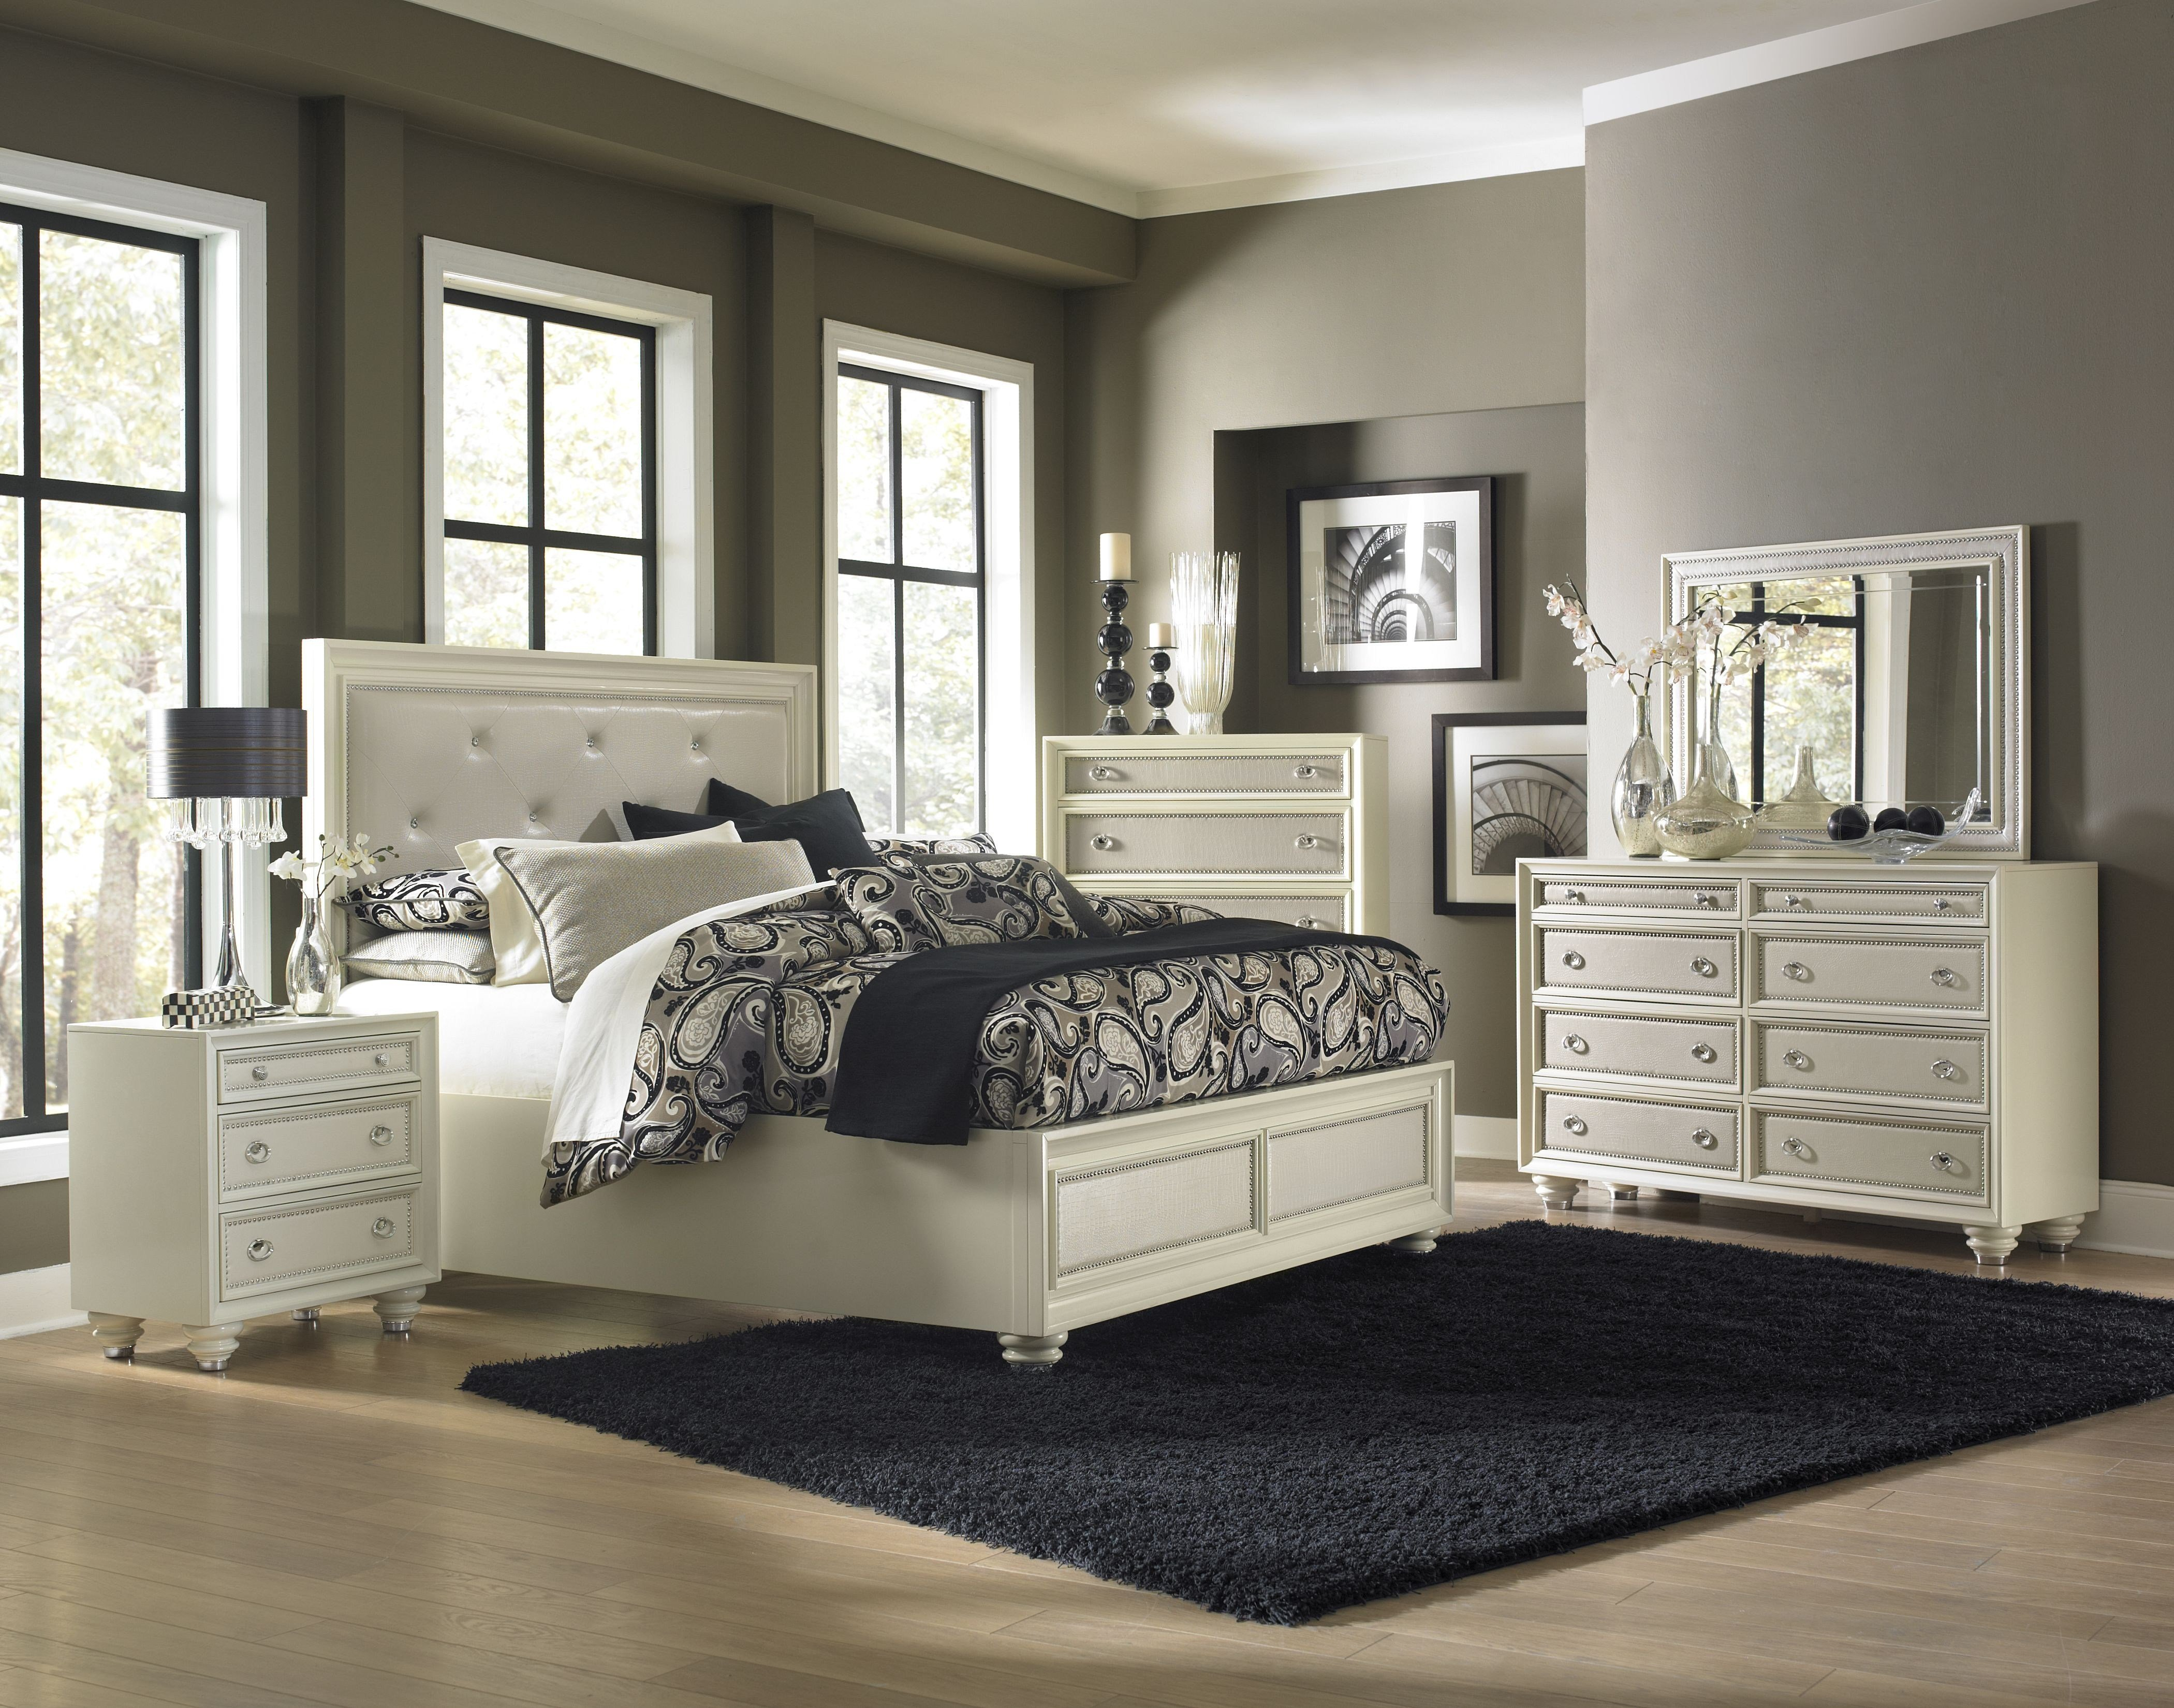 Best Diamond Island Bedroom Set From Magnussen Home B2344 50H With Pictures